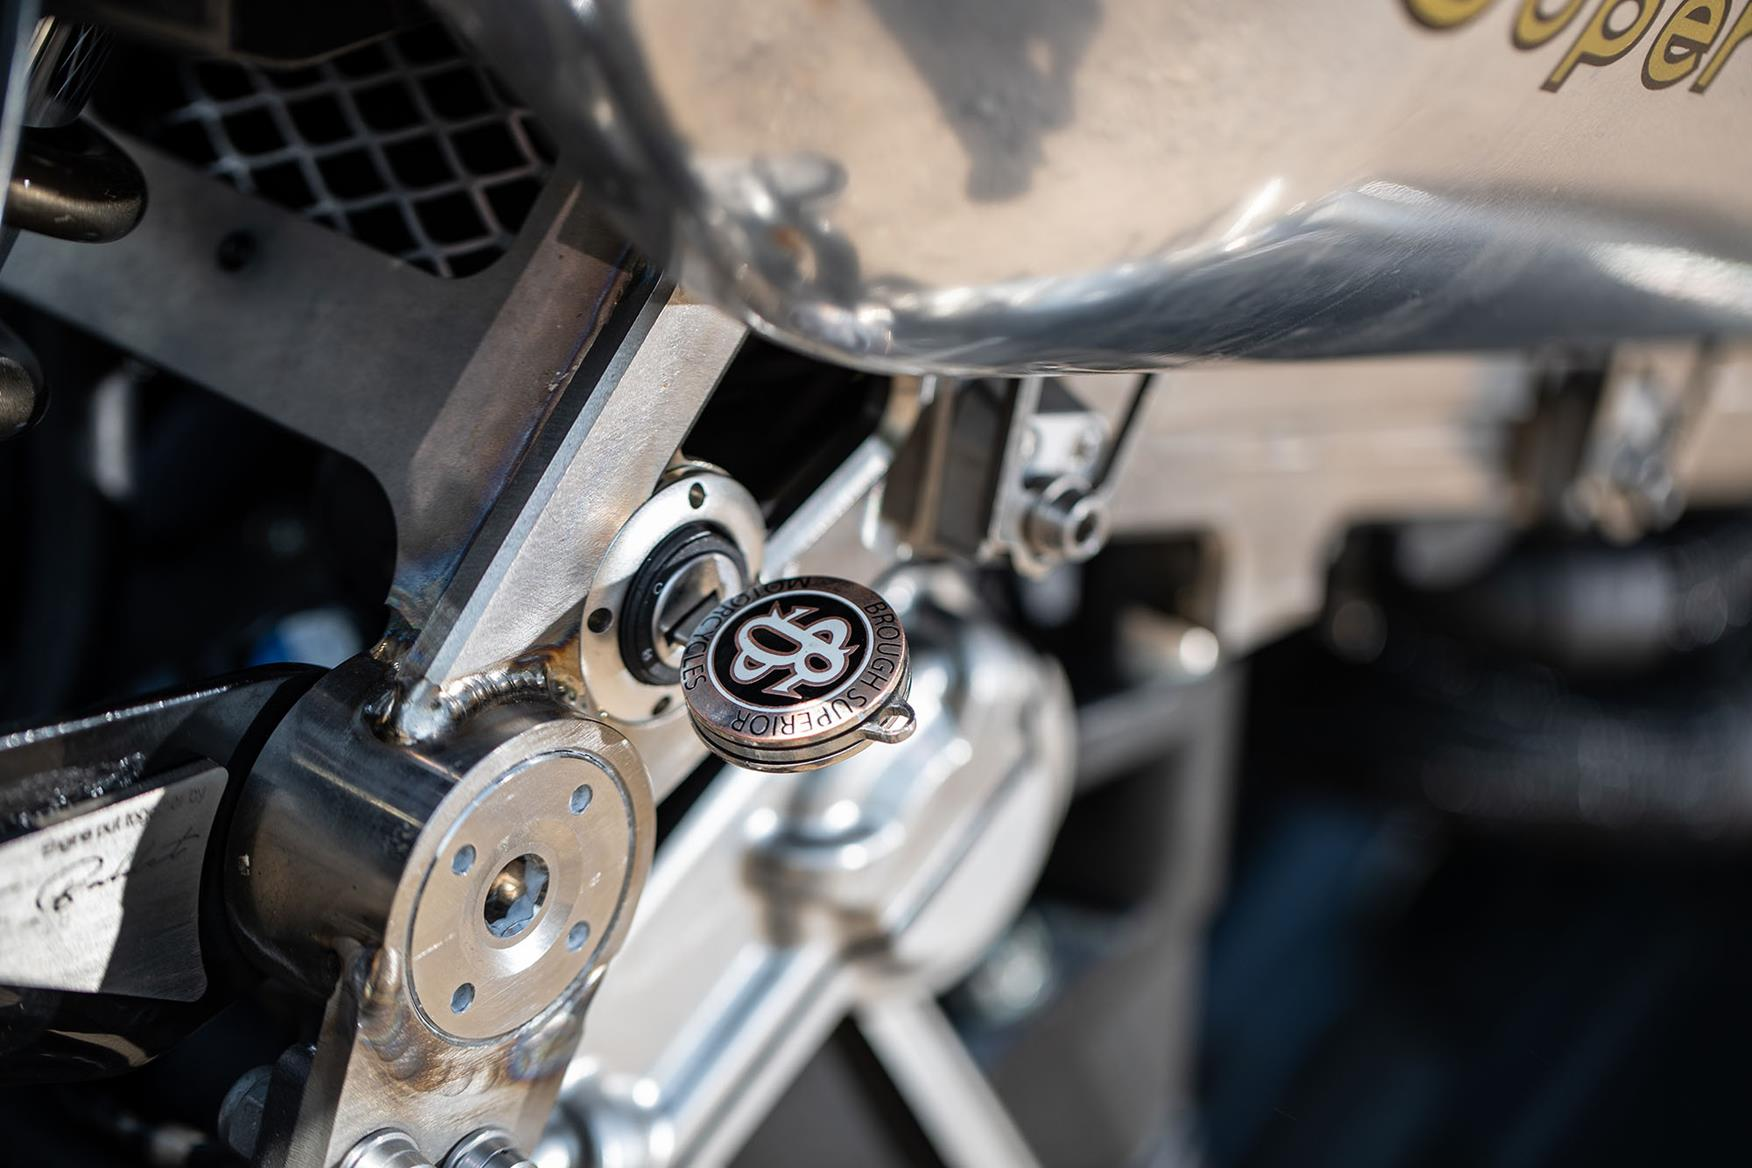 Brough Superior SS100 key in ignition